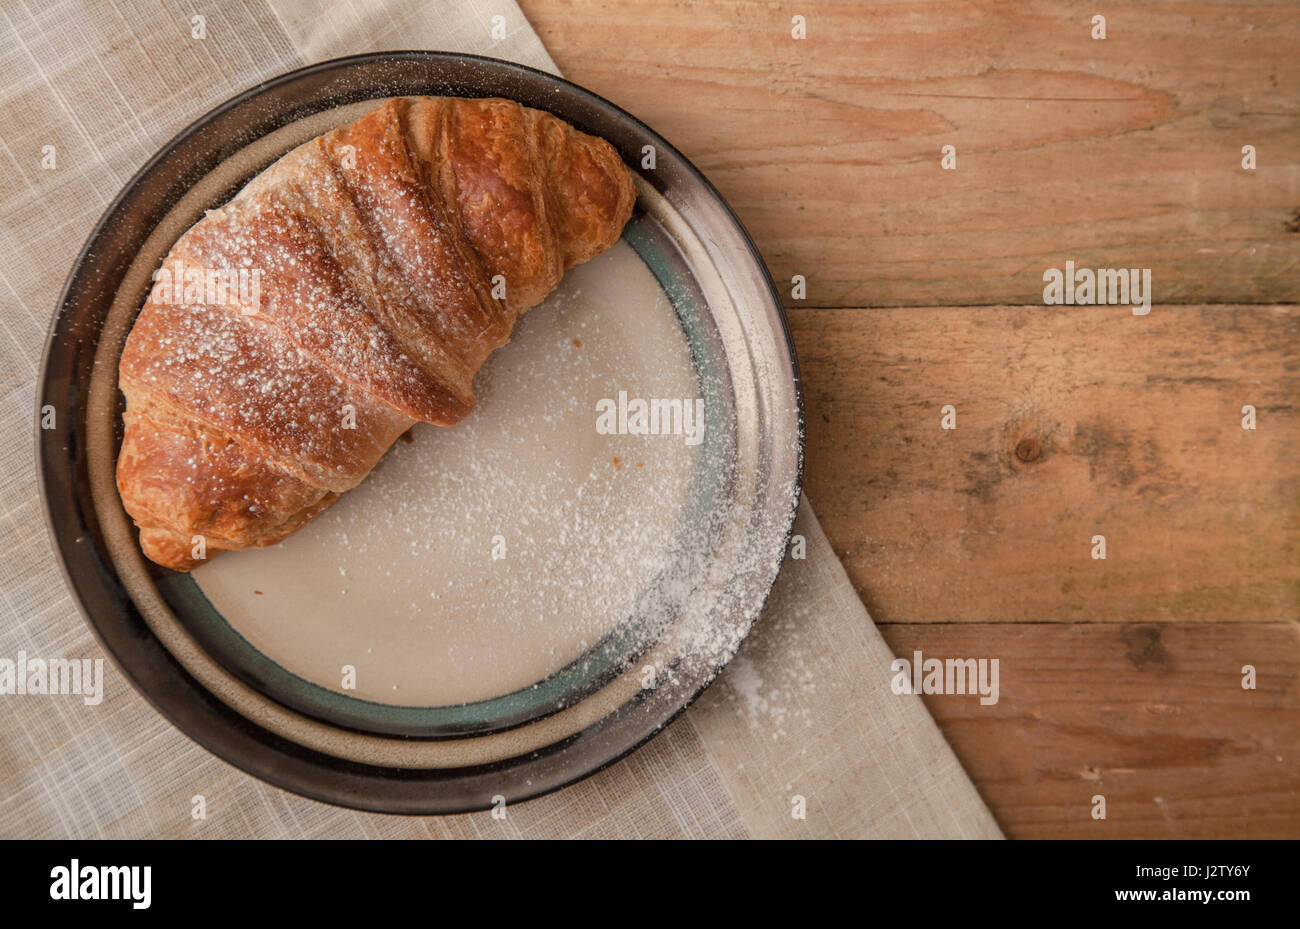 Top View of two fresh croissants dusted with icing sugar on a plate - Stock Image